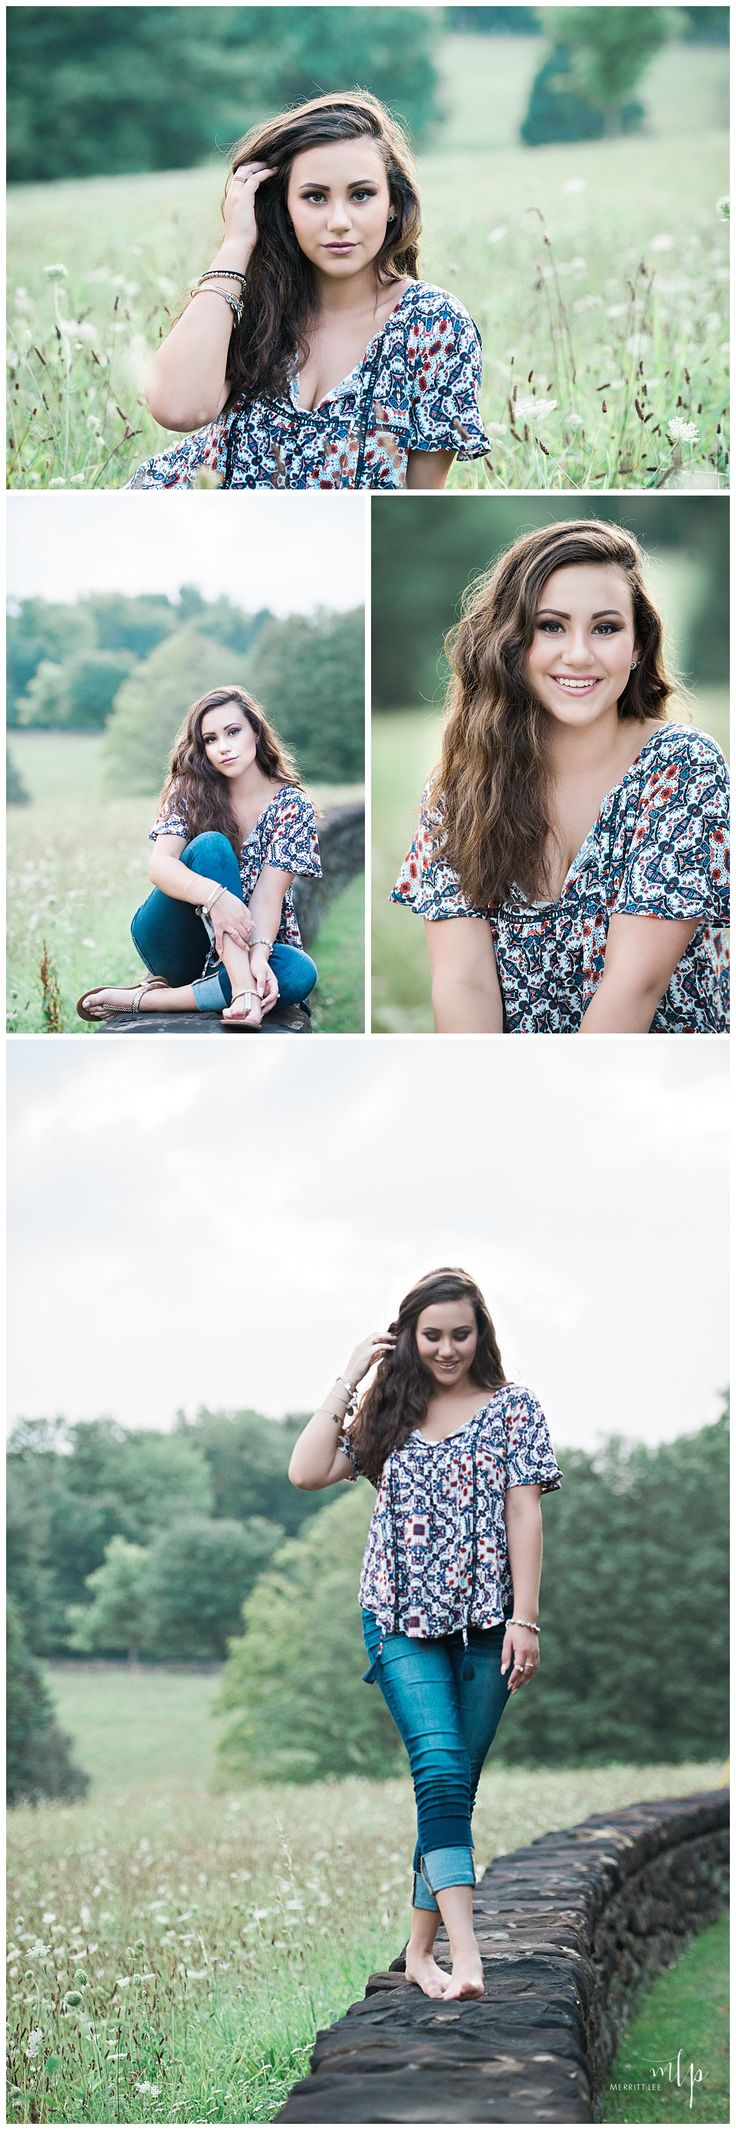 Outdoor Senior Pic Idea! Styled shoot - Hairstyle - Loose Curls - Makeup - Fashion - Natural - Loose Curls - Unique Senior Pictures - Teen Fashion - Senior Inspo - Trendy - Senior Girl Poses - Sewickley Senior Pictures - Pittsburgh Senior Pictures - By Merritt Lee Photography More